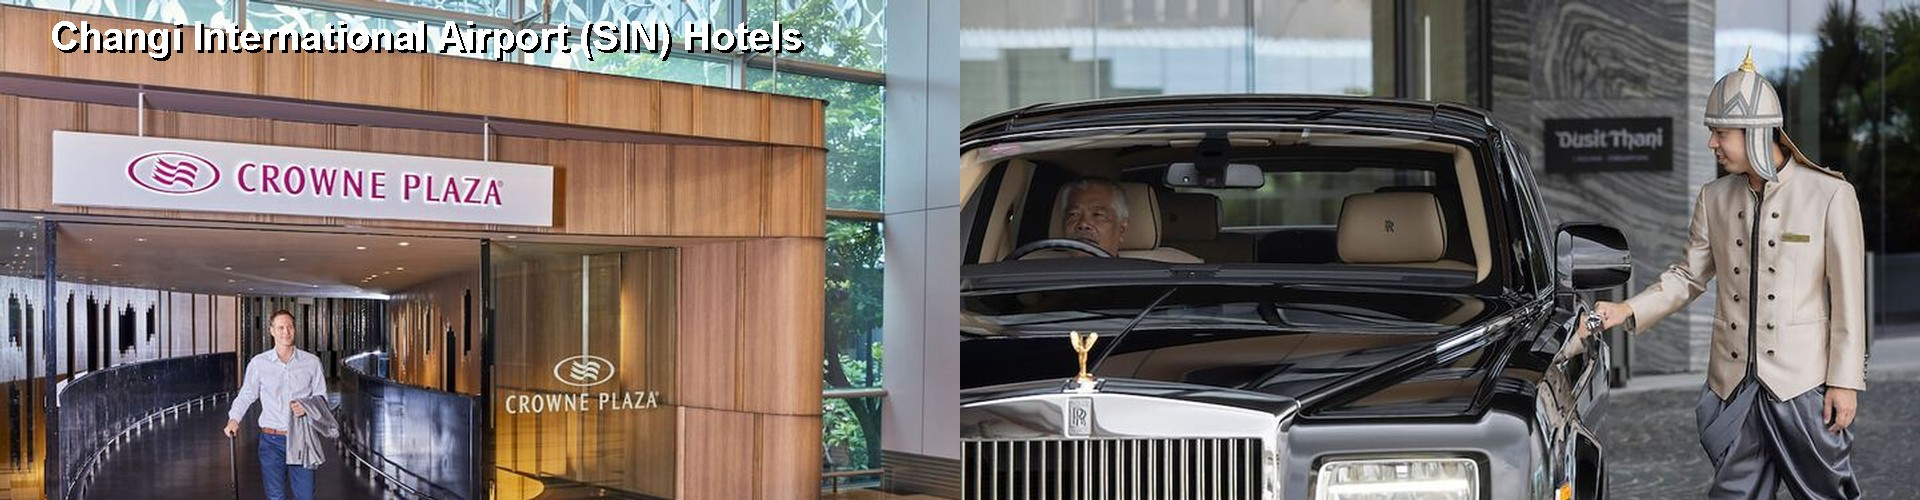 5 Best Hotels near Changi International Airport (SIN)